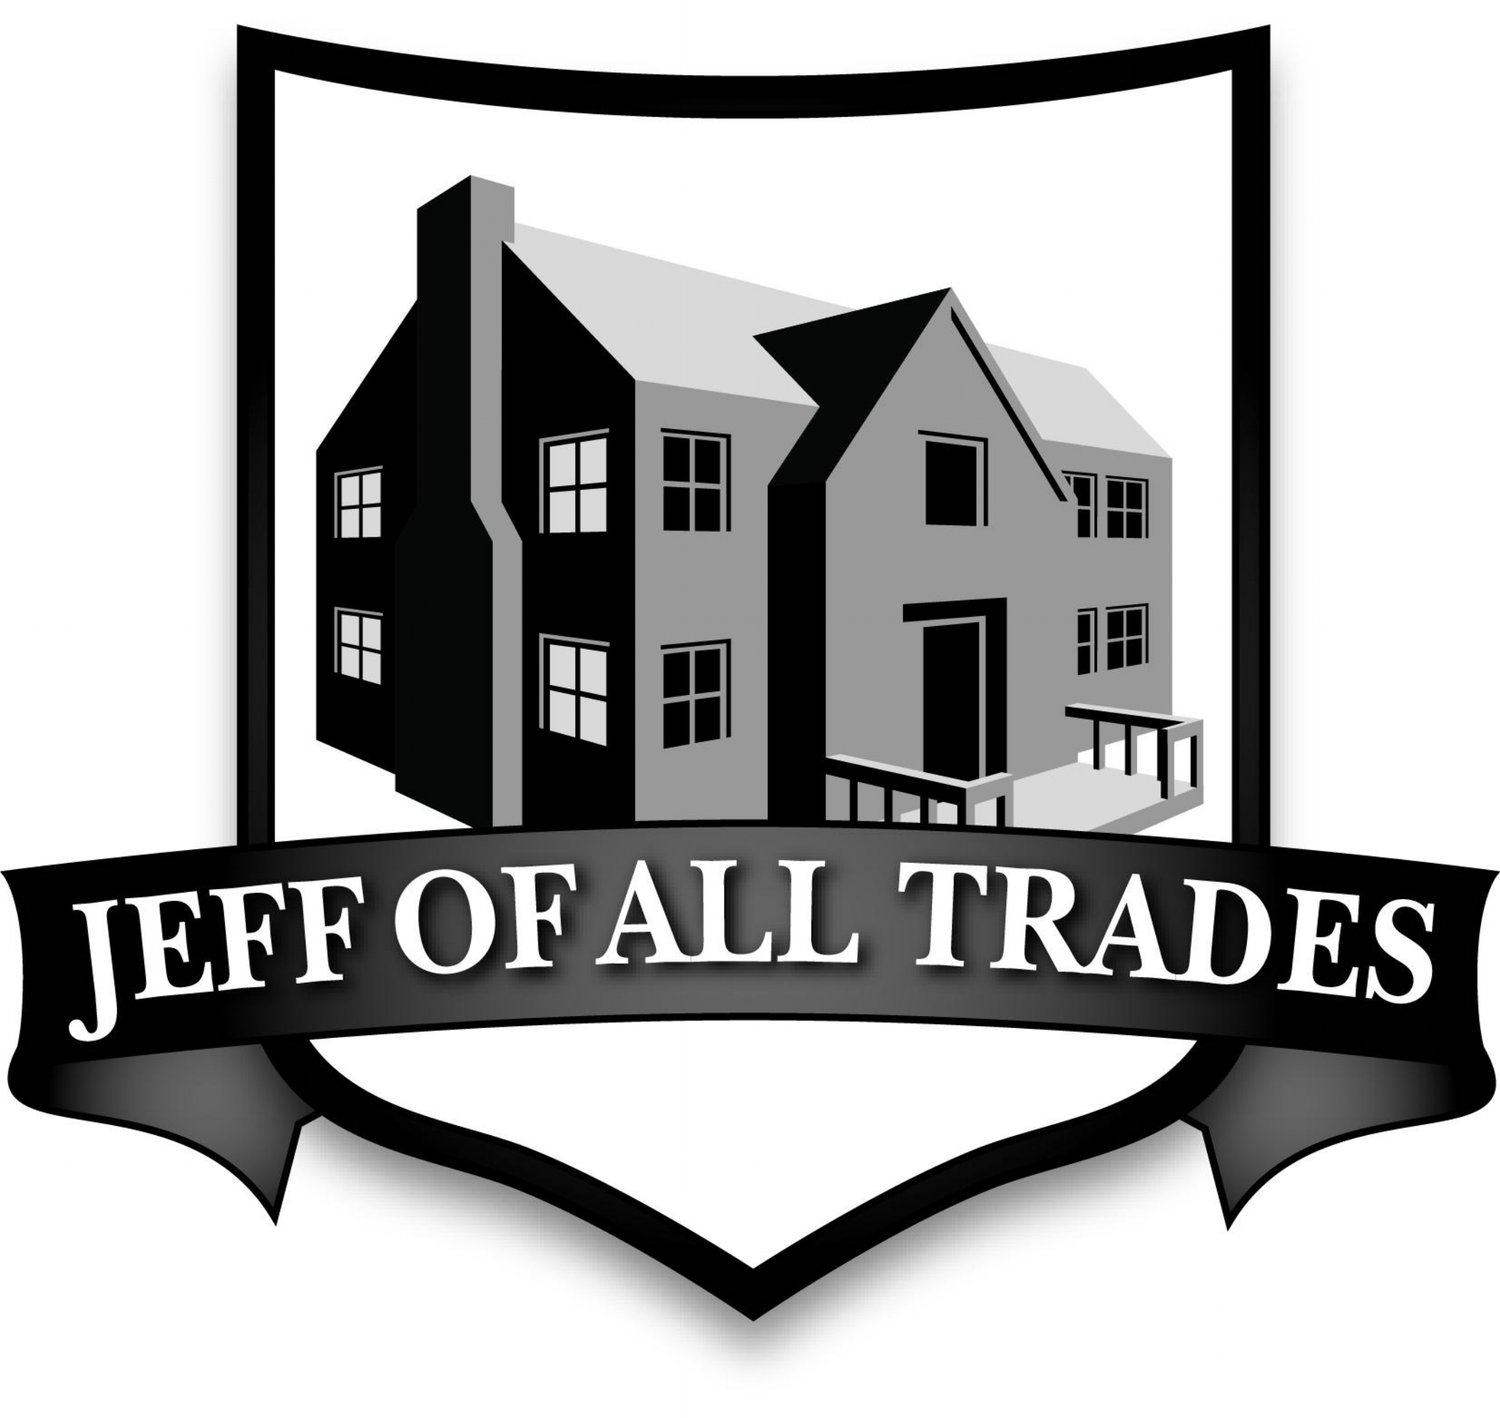 JEFF OF ALL TRADES, LLC